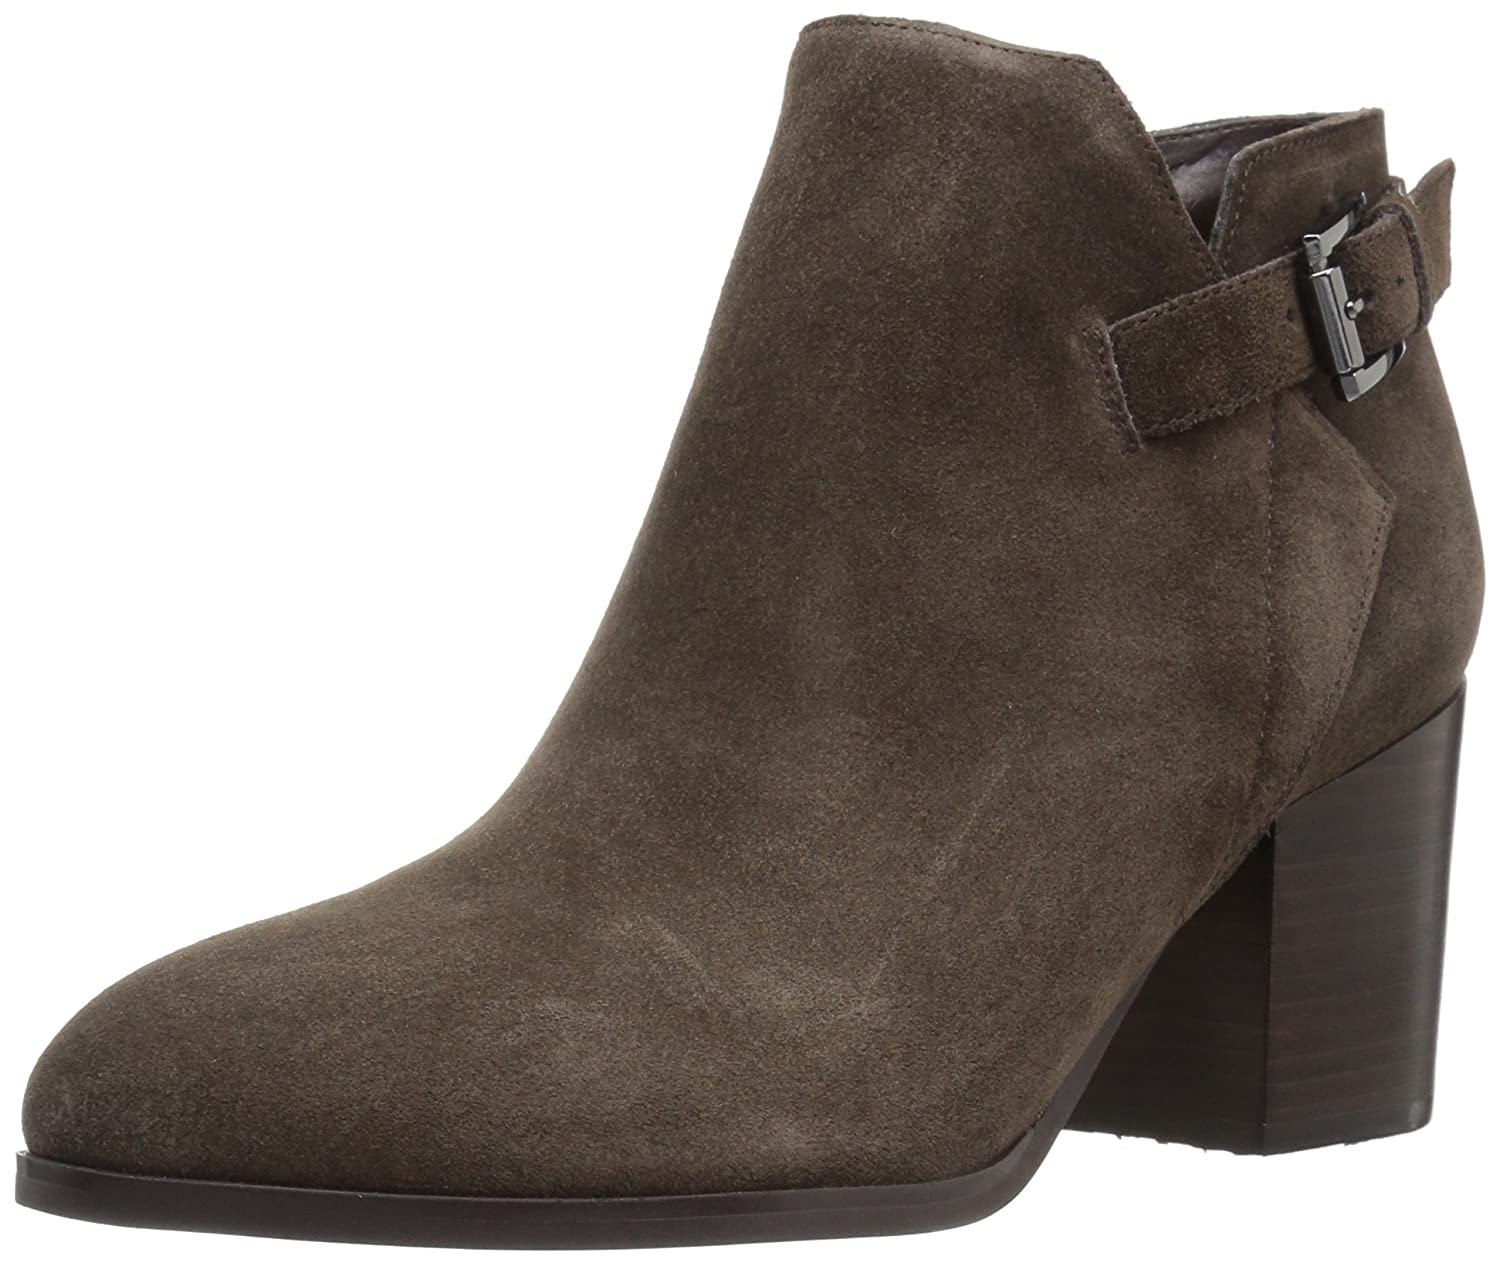 Marc Fisher Women's Vandy Ankle Boot B071S68PHY 9.5 B(M) US|Brown